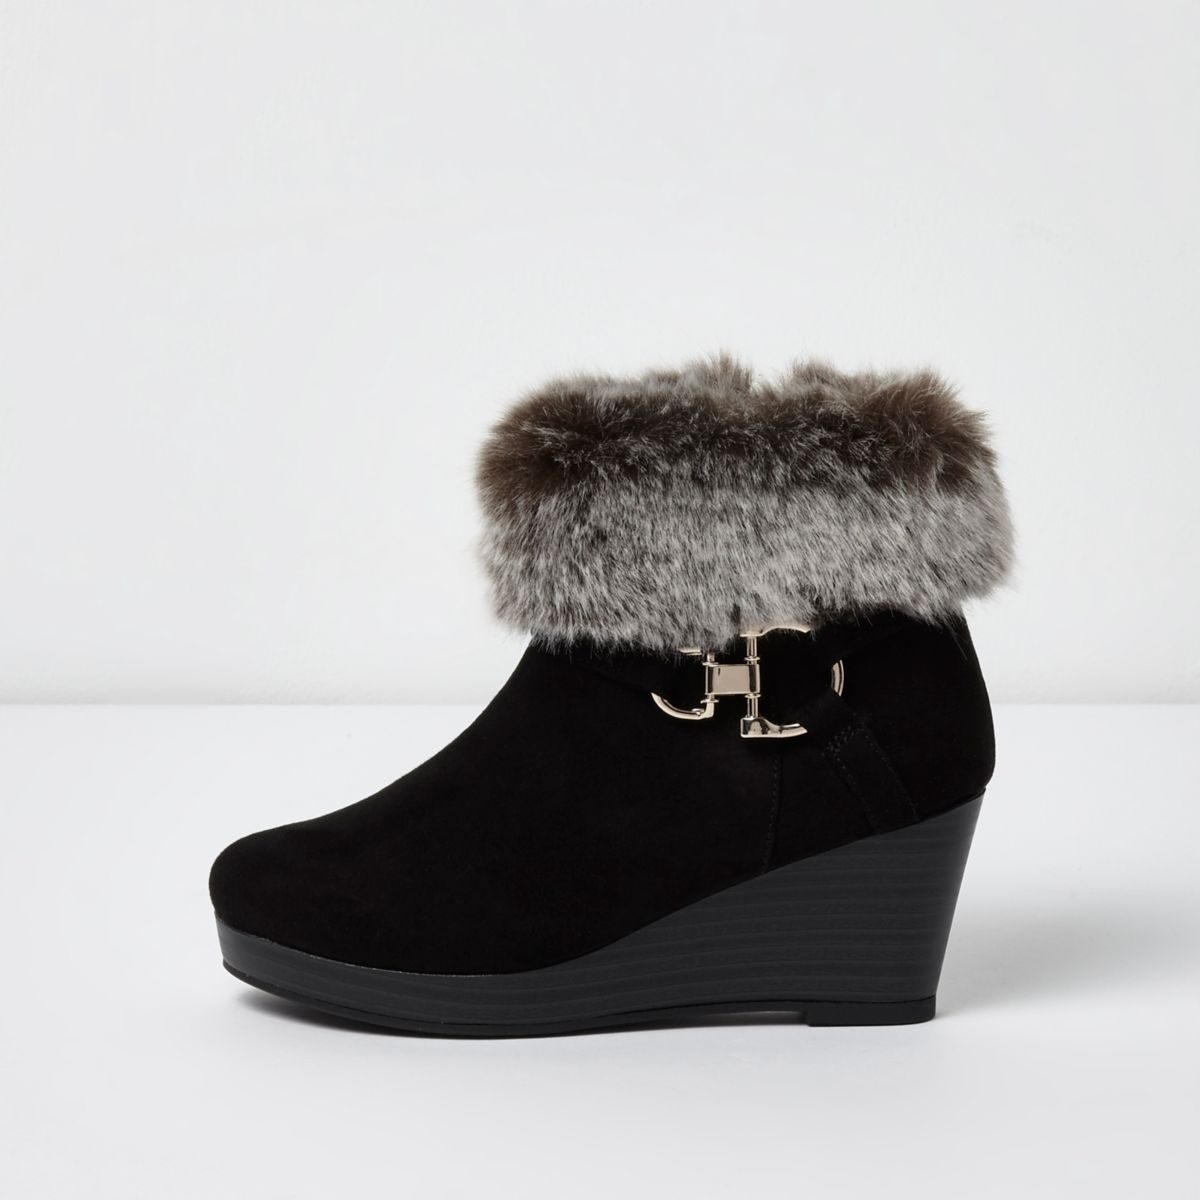 black faux fur trim wedge boots boots footwear